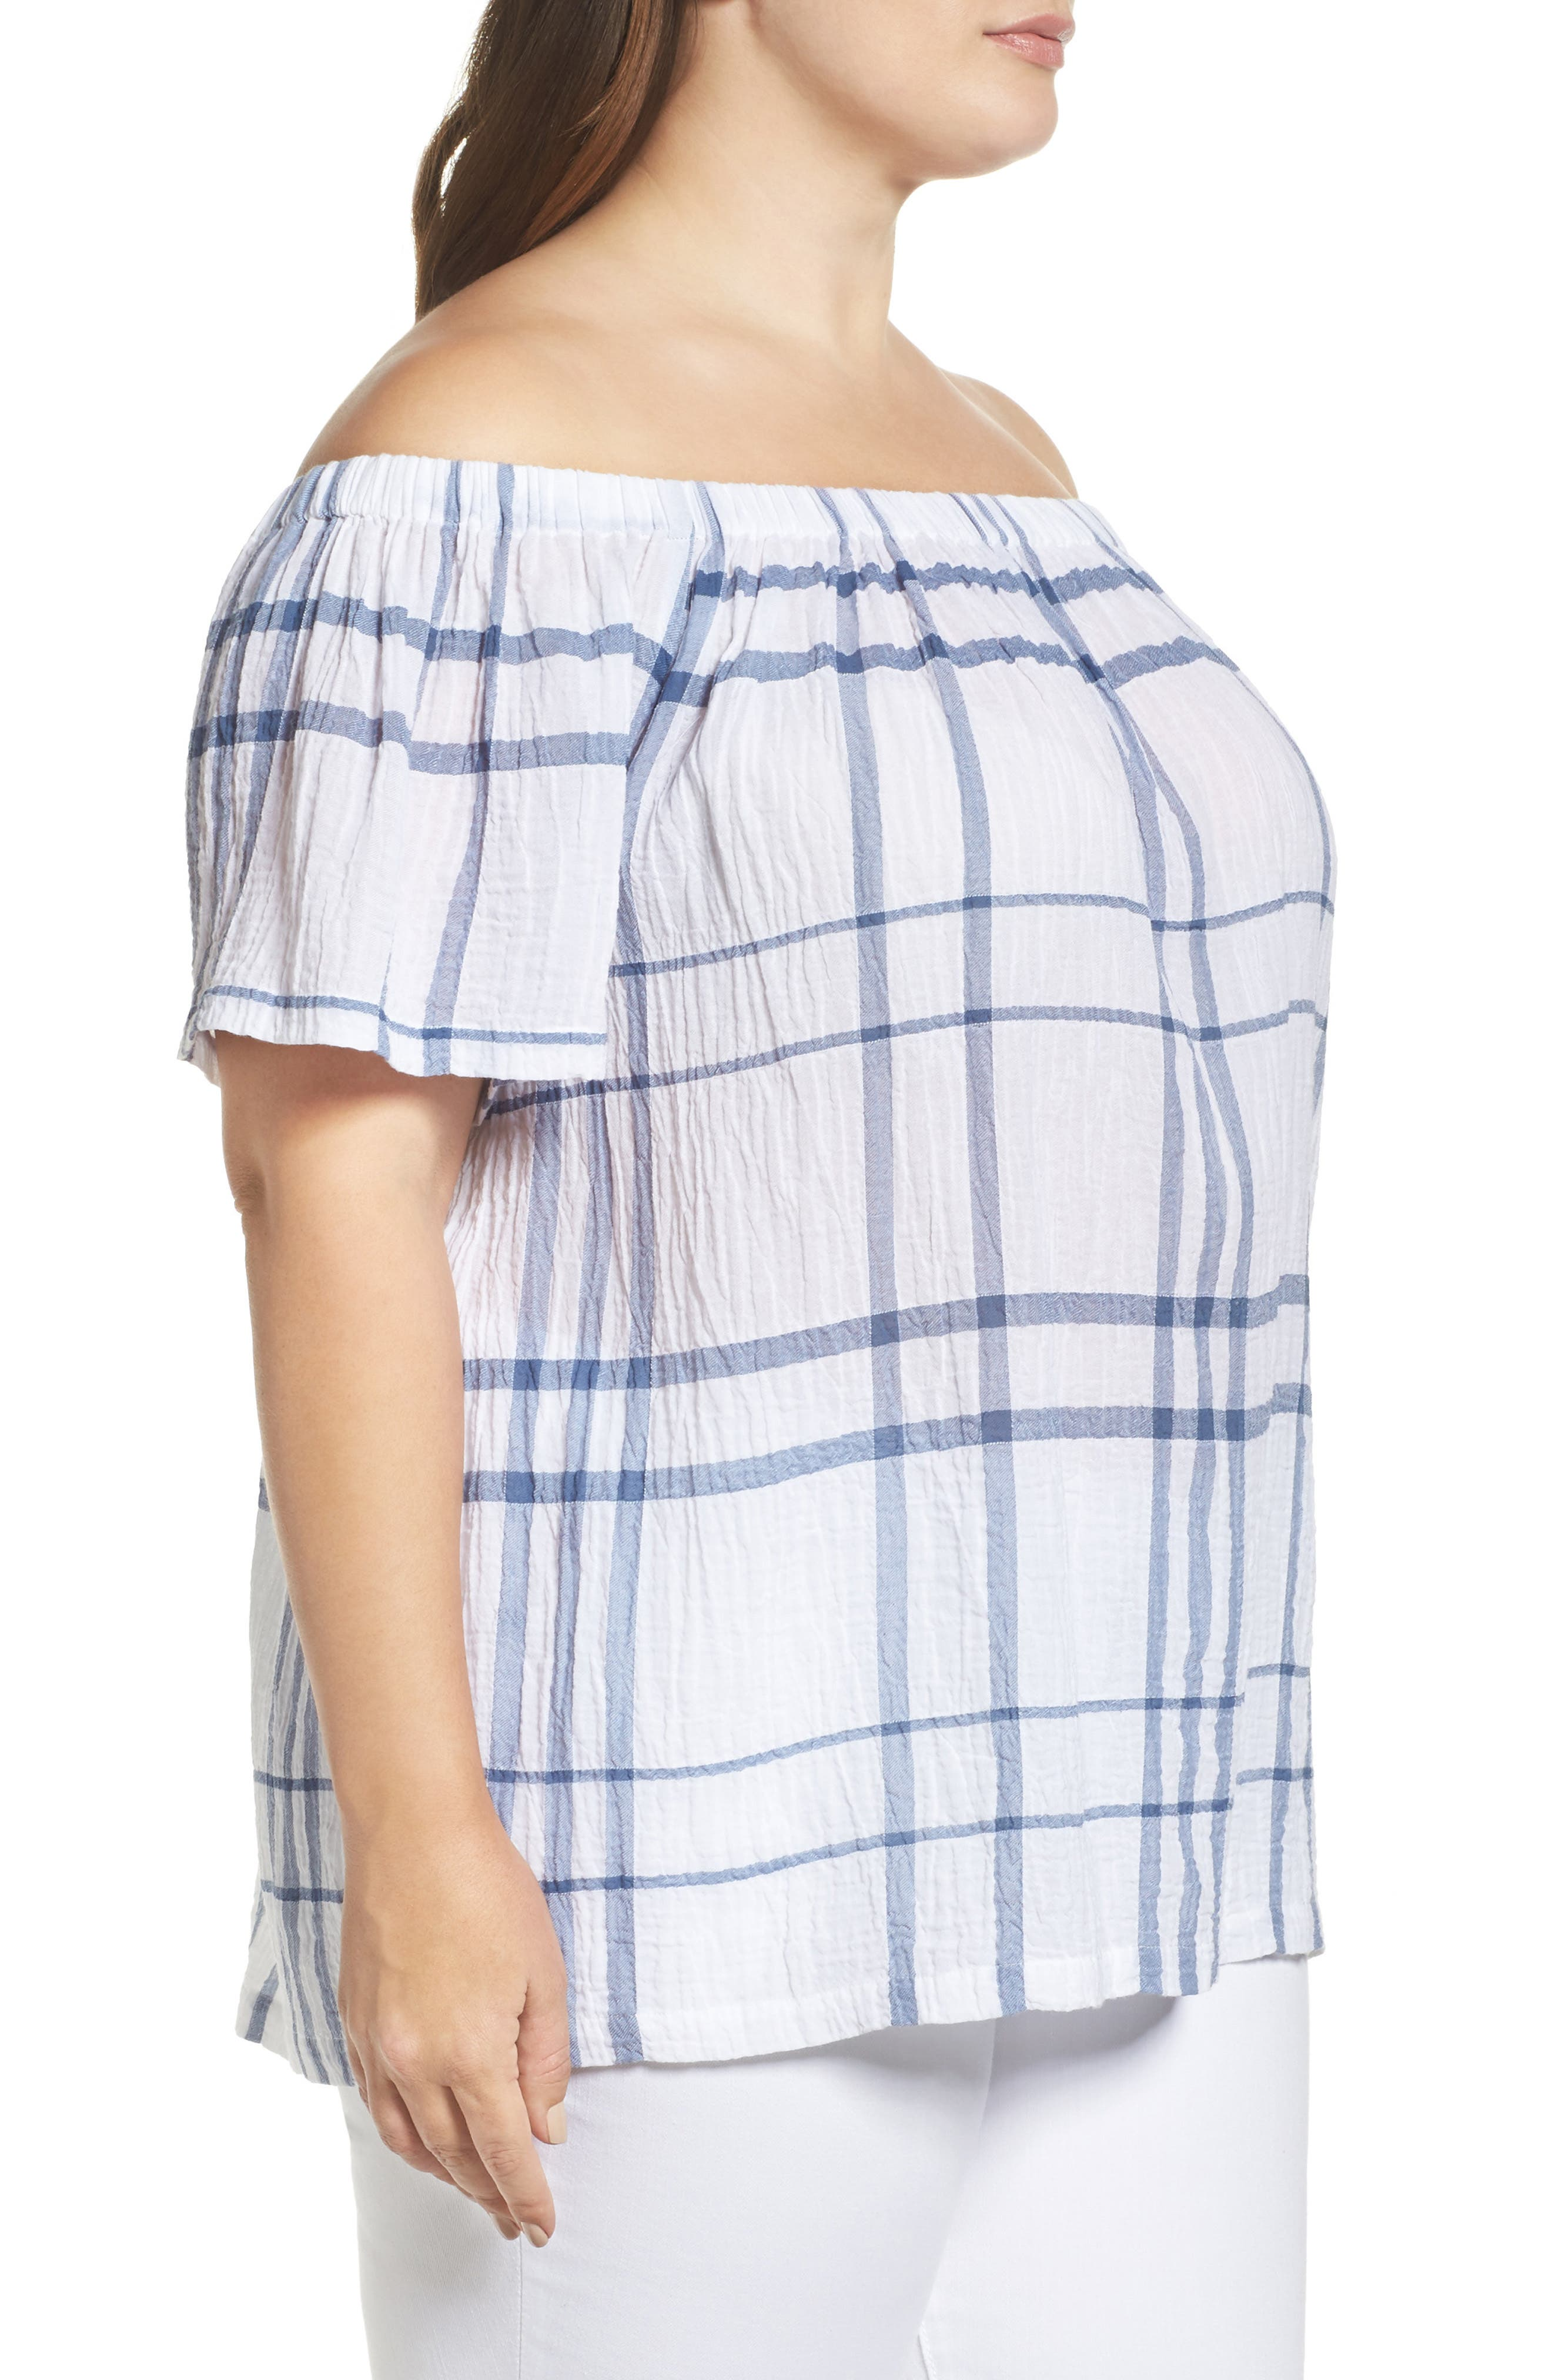 Vince Camuto Timeless Plaid Off the Shoulder Blouse,                             Alternate thumbnail 3, color,                             400